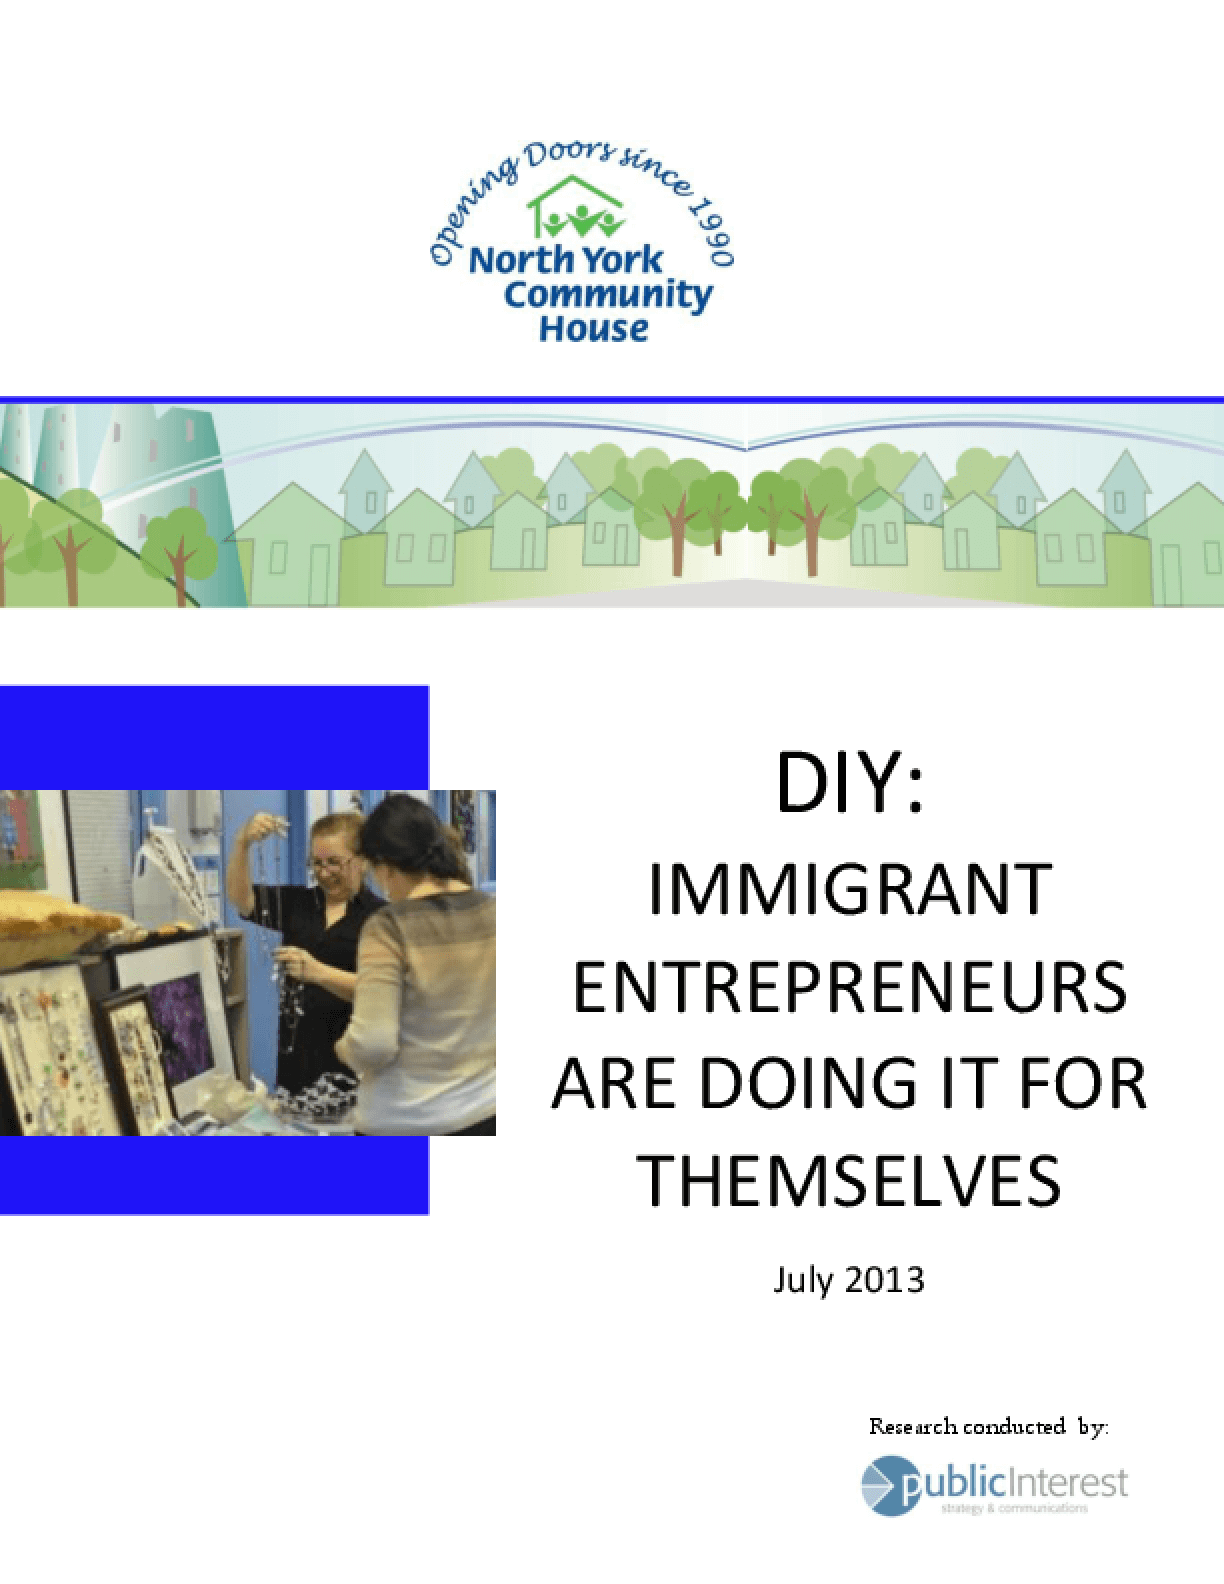 DIY: Immigrant Entrepreneurs are Doing It for Themselves